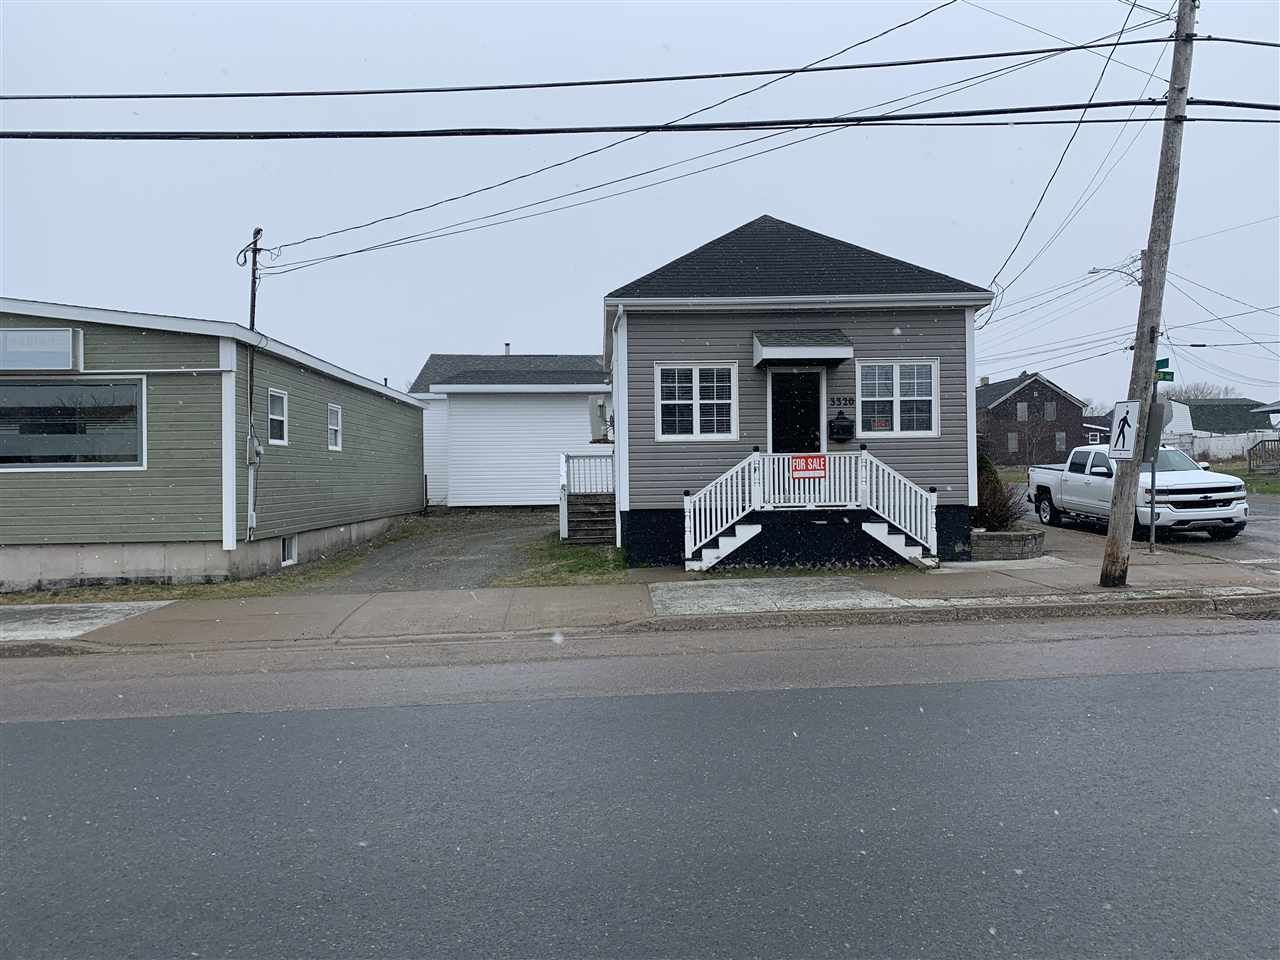 Main Photo: 3320 Plummer Avenue in New Waterford: 204-New Waterford Residential for sale (Cape Breton)  : MLS®# 202007536